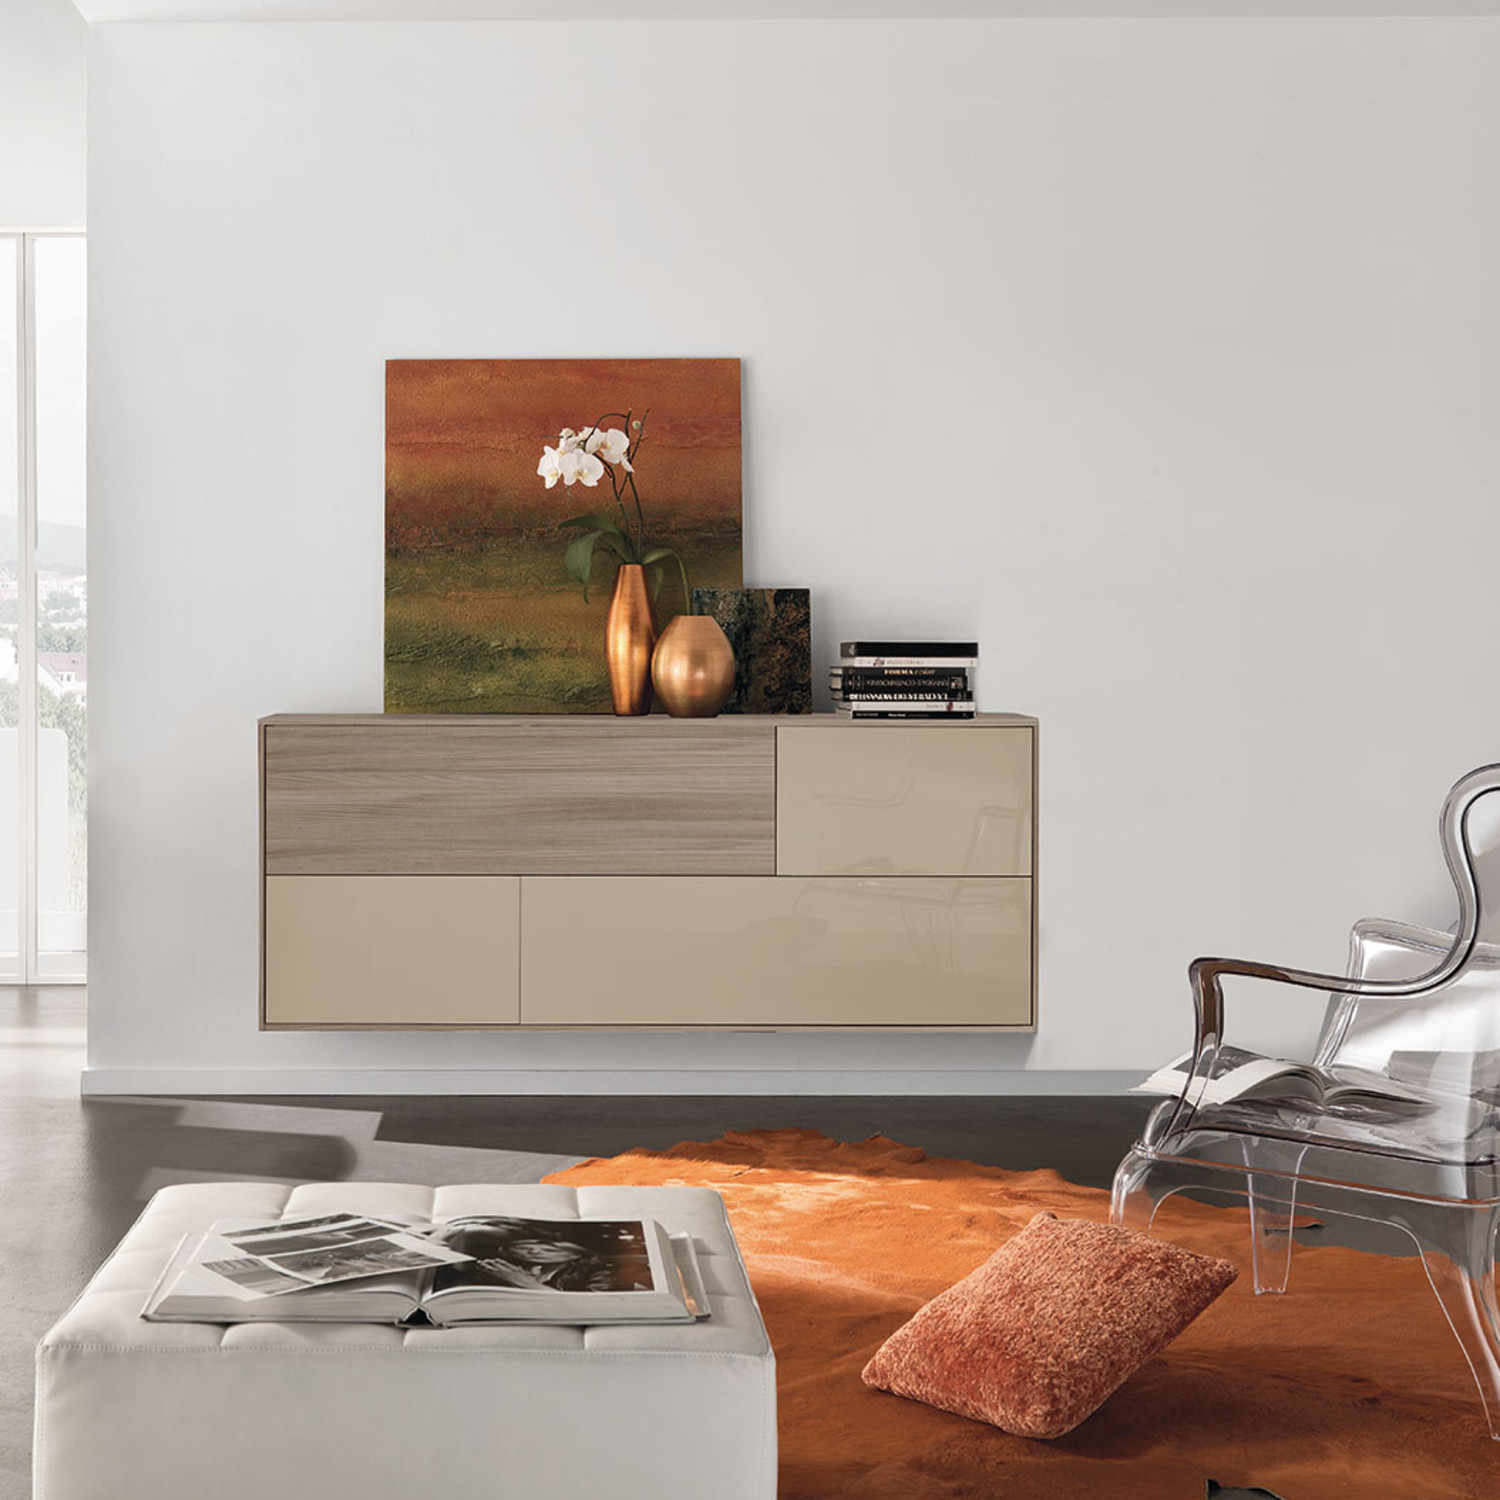 https://www.touchofmodern.com/sales/modloft-living-a66c92c5-f601-4bb1-9ec7-f6793353394c/taranto-sideboard?share_invite_token=WQ3PD6V0